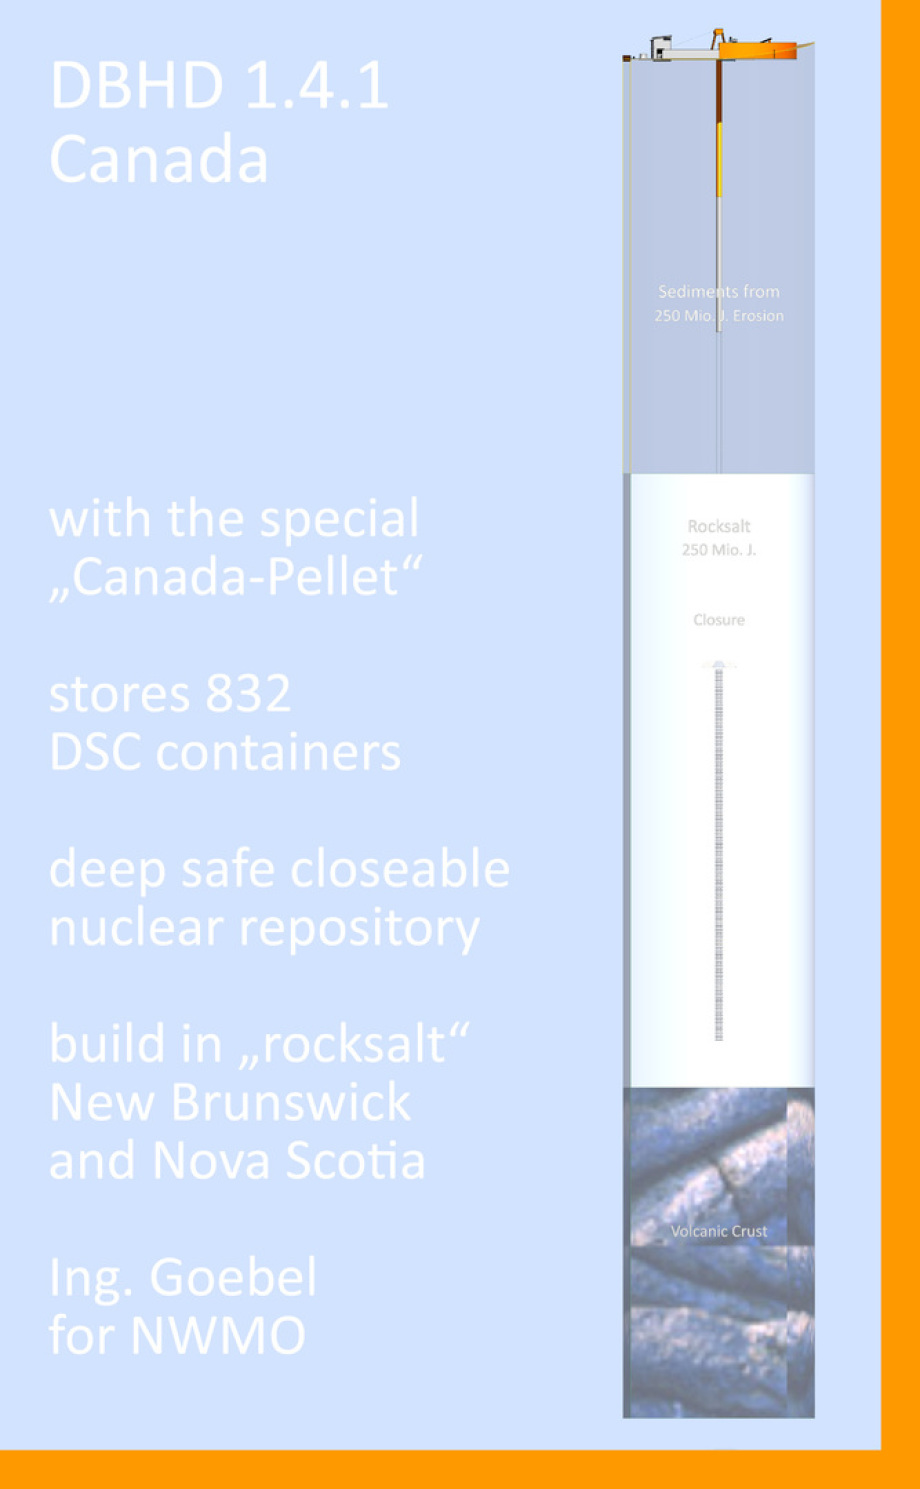 """DBHD 1.4.1 Canada - with the special """"Canada-Pellet"""" stores 832 """"old"""" DSC containers in a deep, safe, closeable nuclear repository in rocksalt New Brunswick, Nova Scotia"""